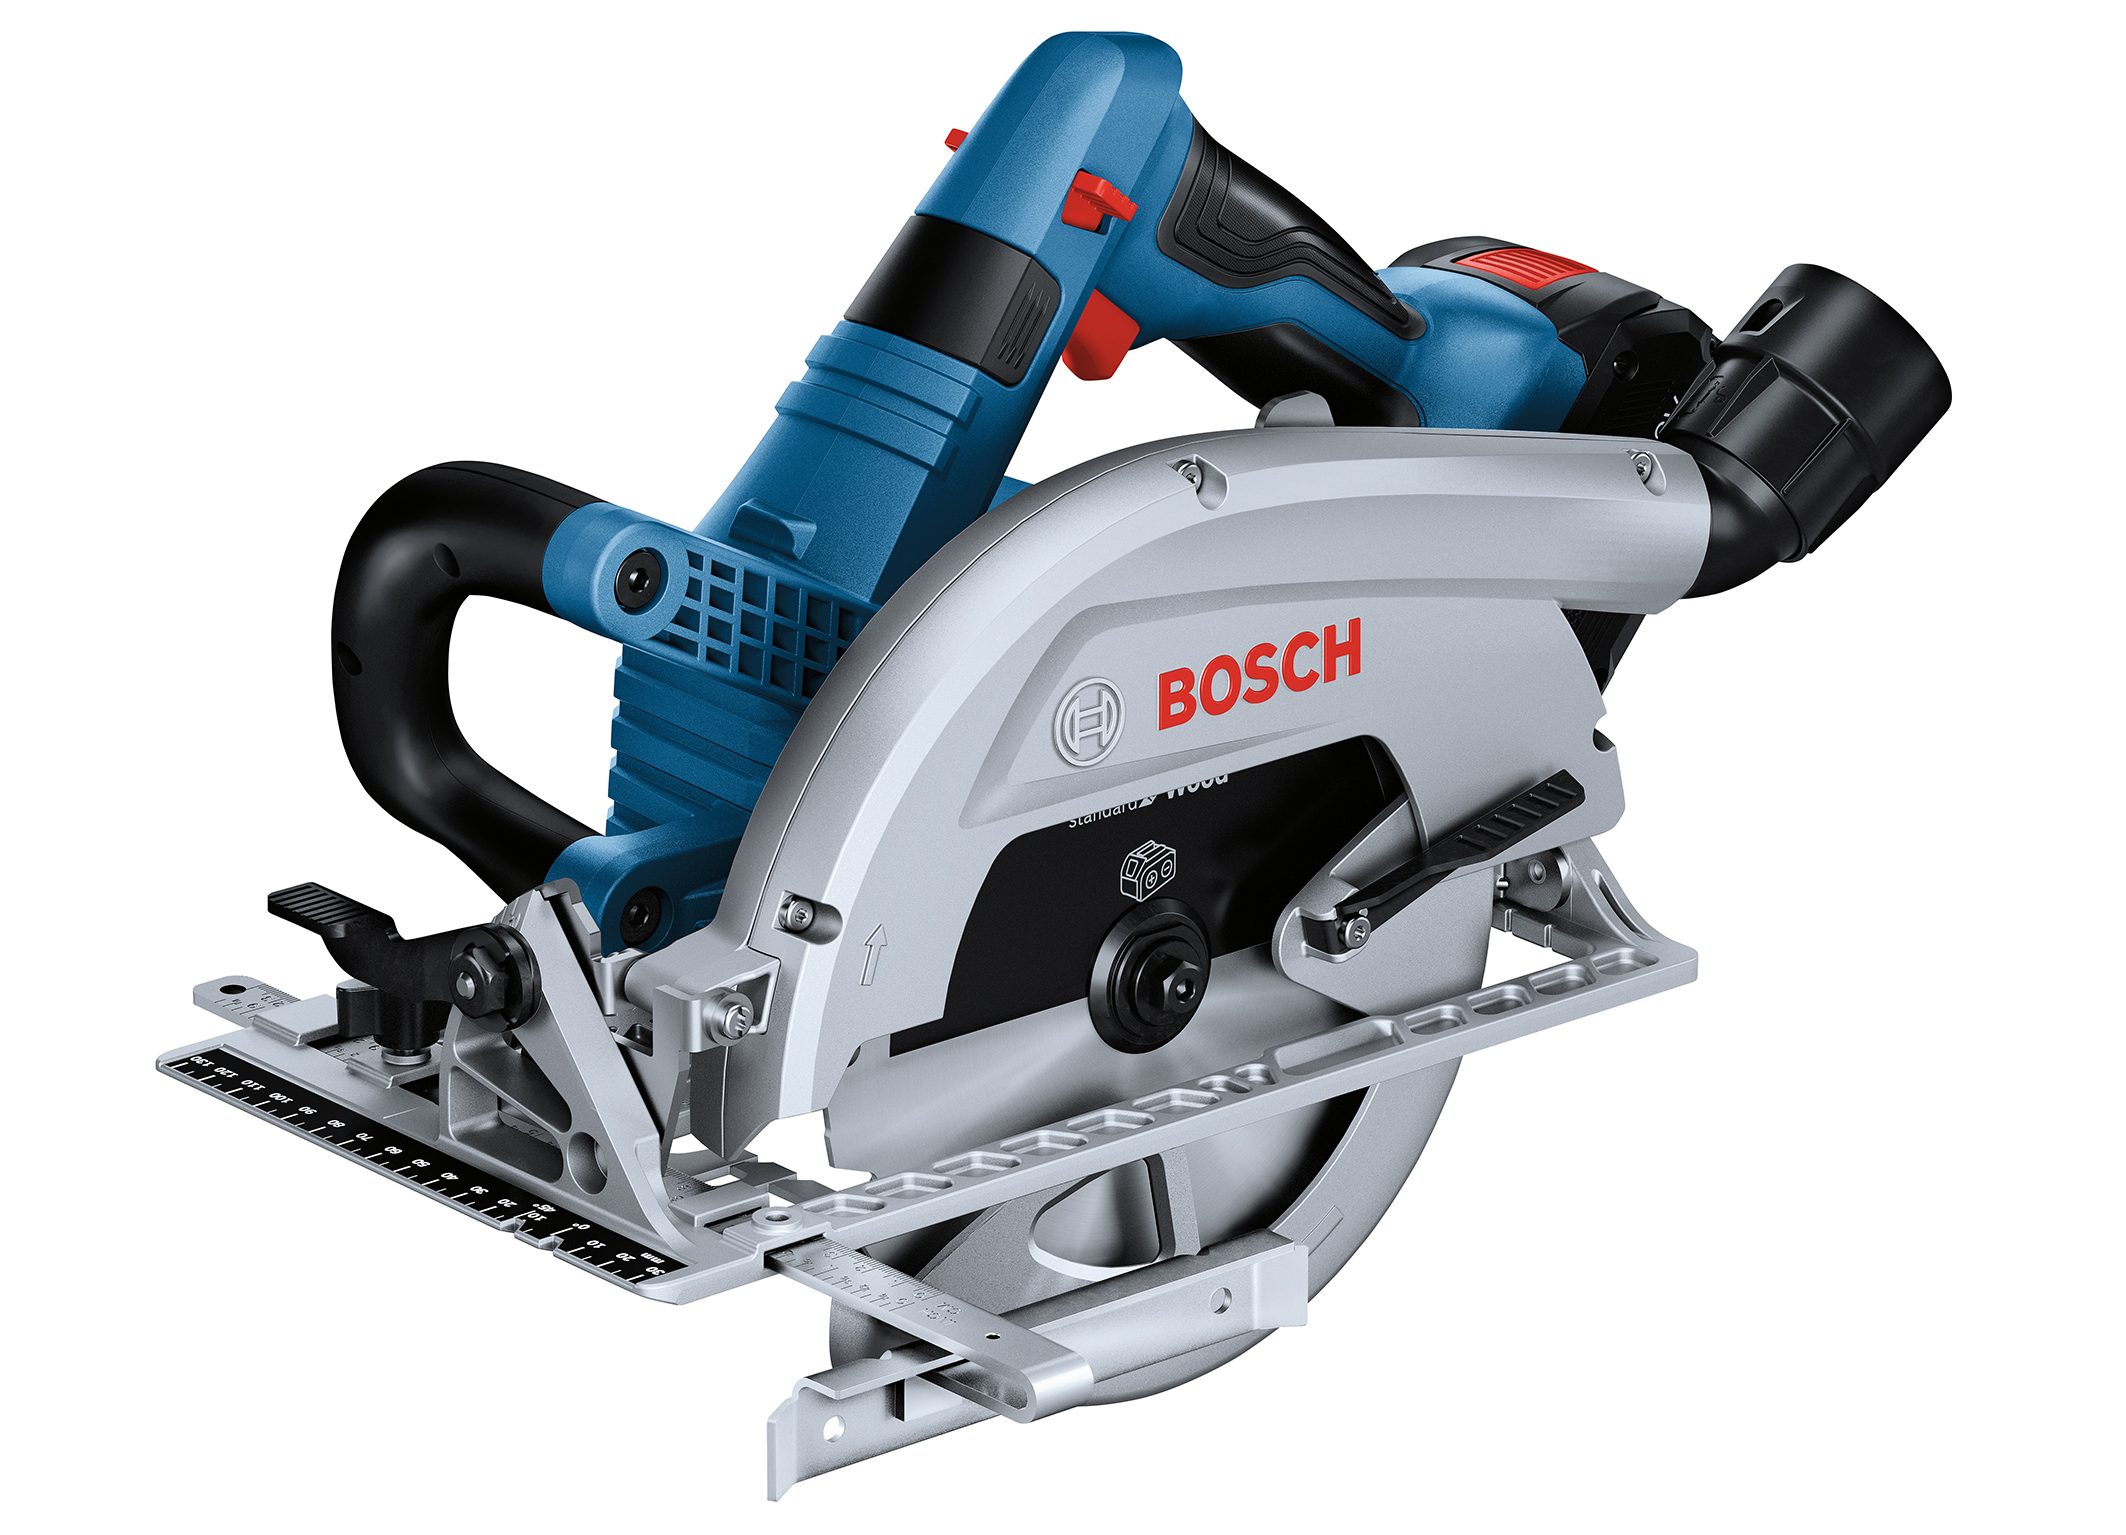 Now with saw blade on the left: Biturbo hand-held circular saw GKS 18V-70 L Professional from Bosch for pros